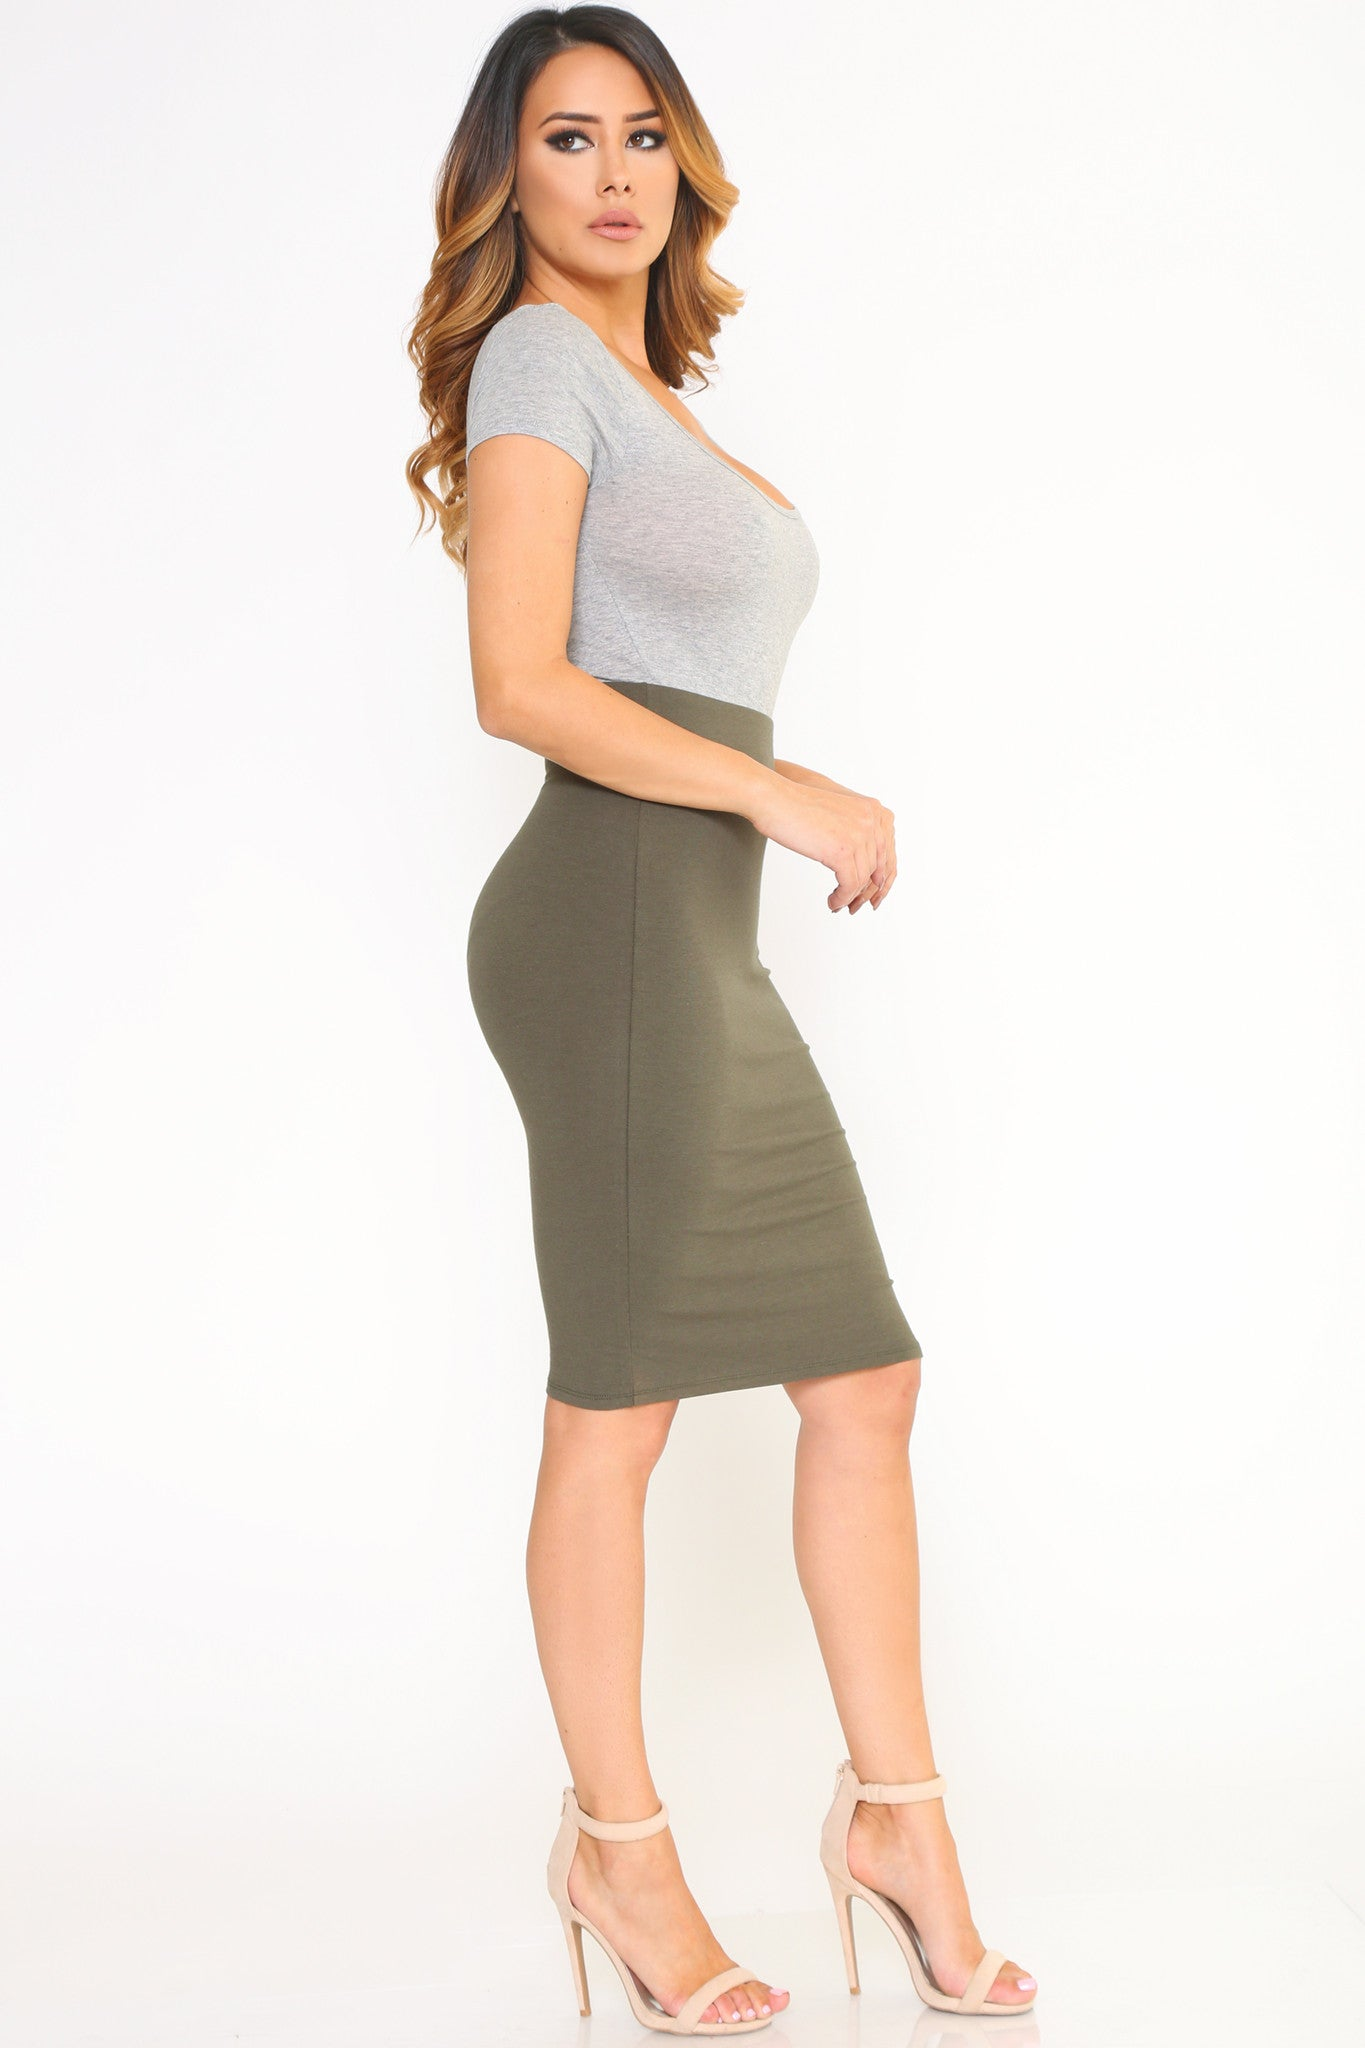 ELLA SKIRT - Glam Envy - 1